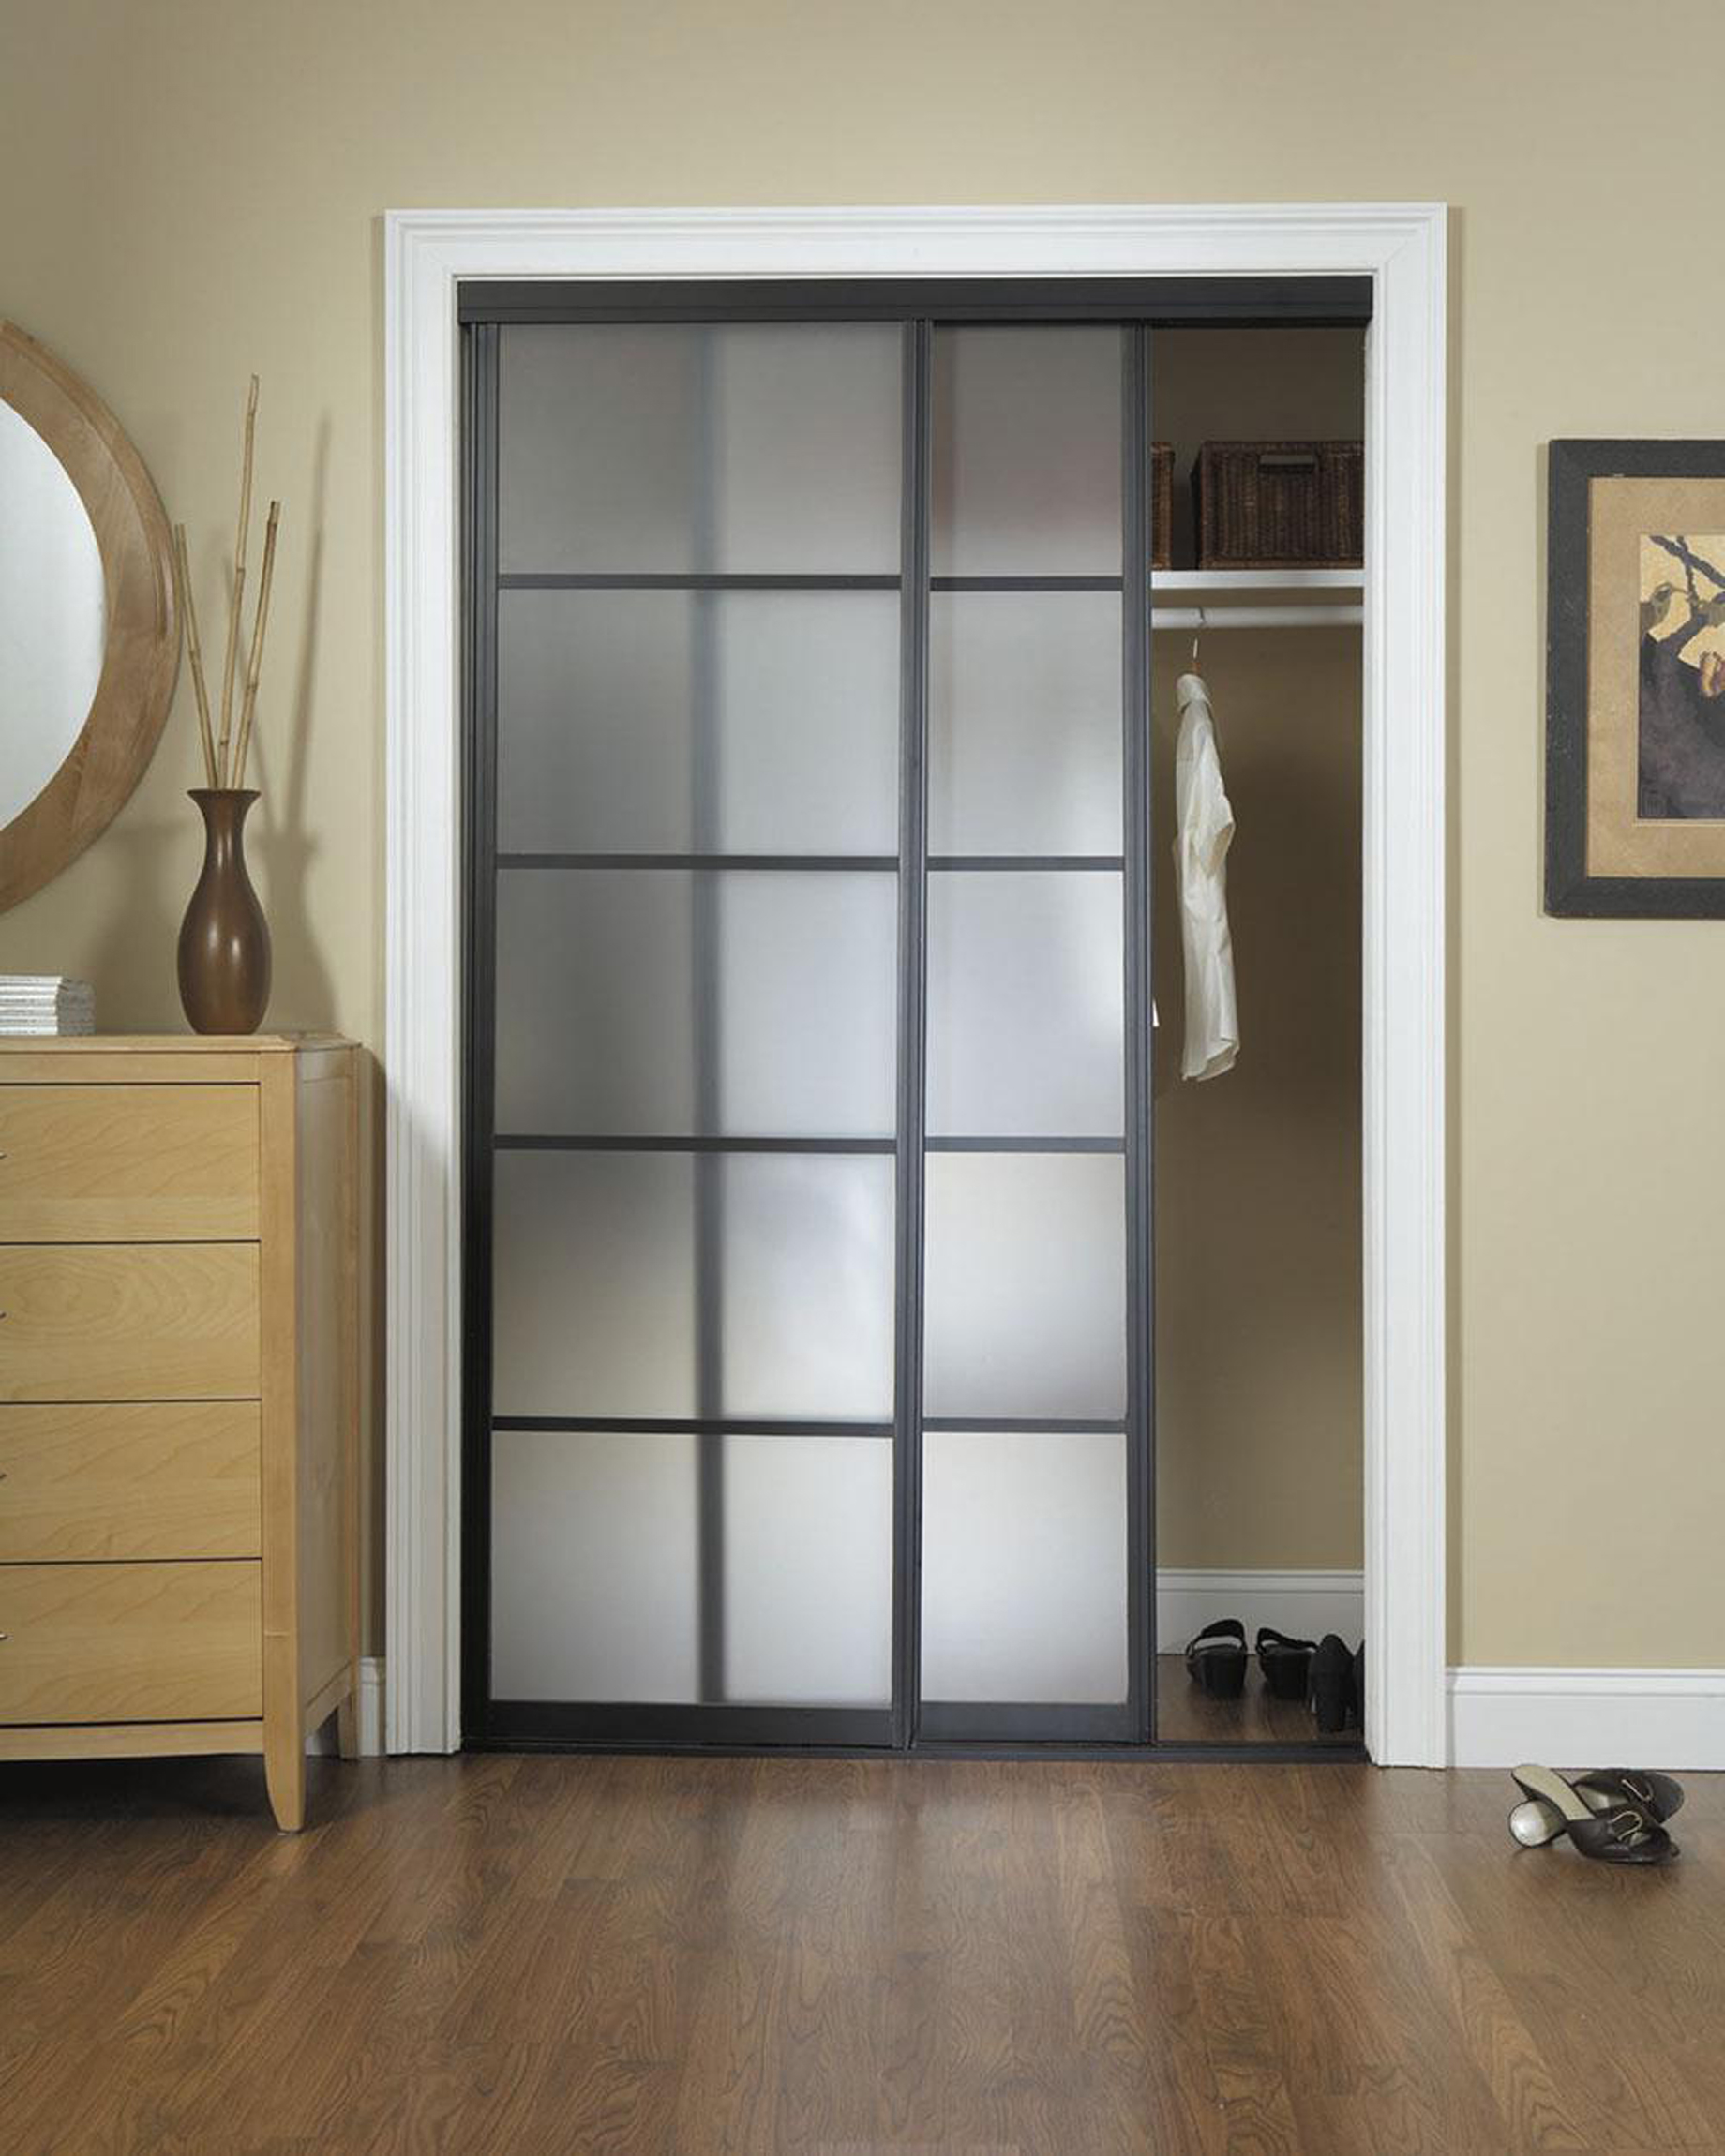 Minimalist Ikea Bedroom Closets Using Wardrobe Closets For Your Inspirtaions Top Notch Design Ideas Of Ikea Bedroom Closets (Image 24 of 25)